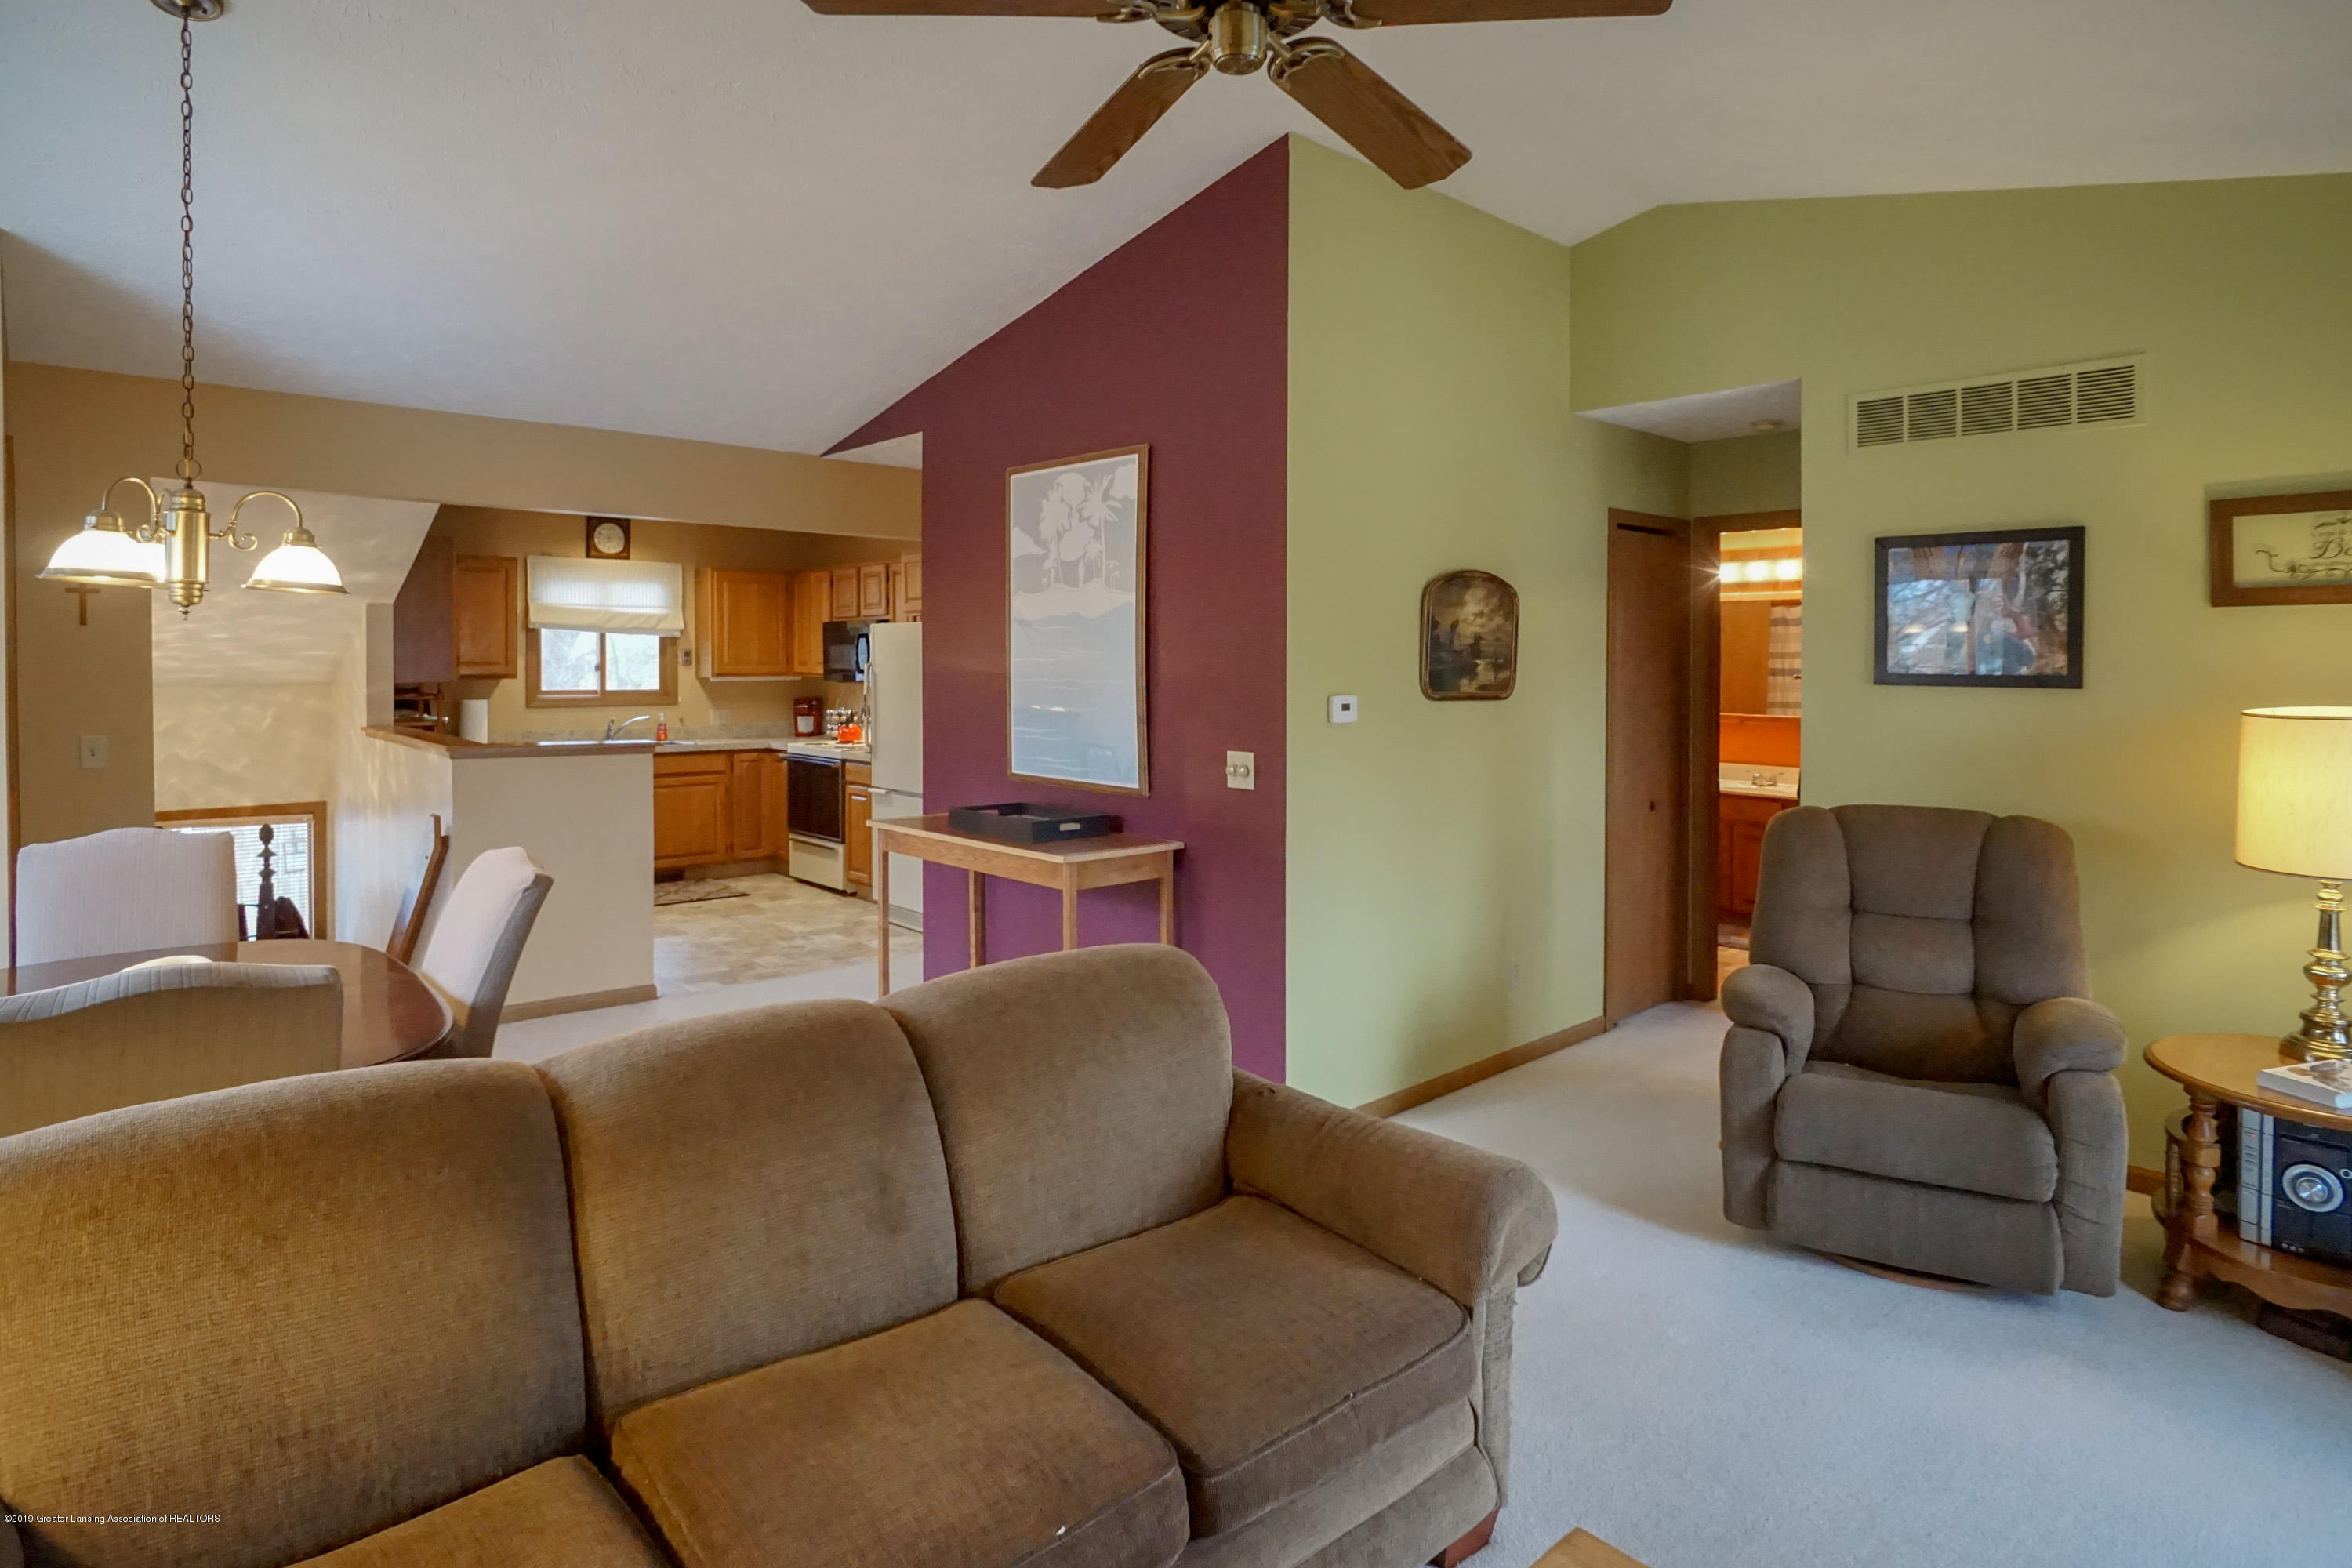 5041 W Willoughby Rd APT 1 - 5140WilloughbyRdMLS-13 - 10